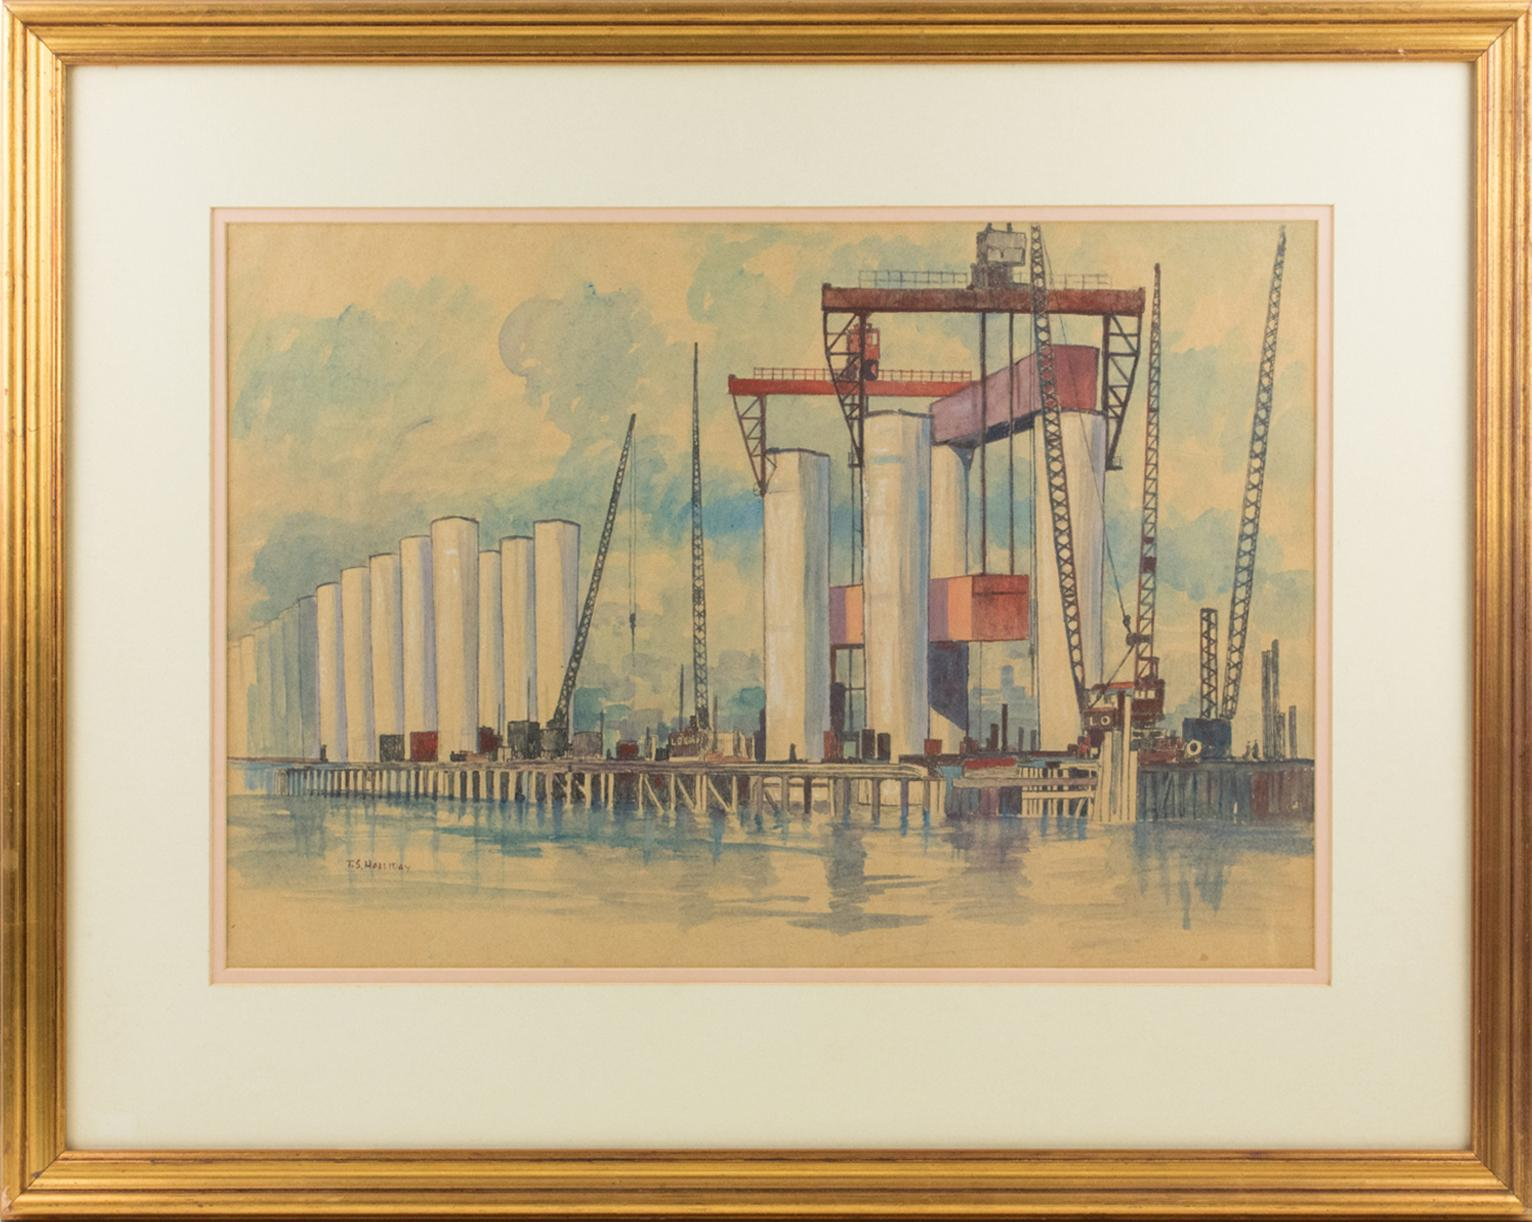 Industrial Bridge Construction Seascape Pastel Painting by Thomas S. Halliday